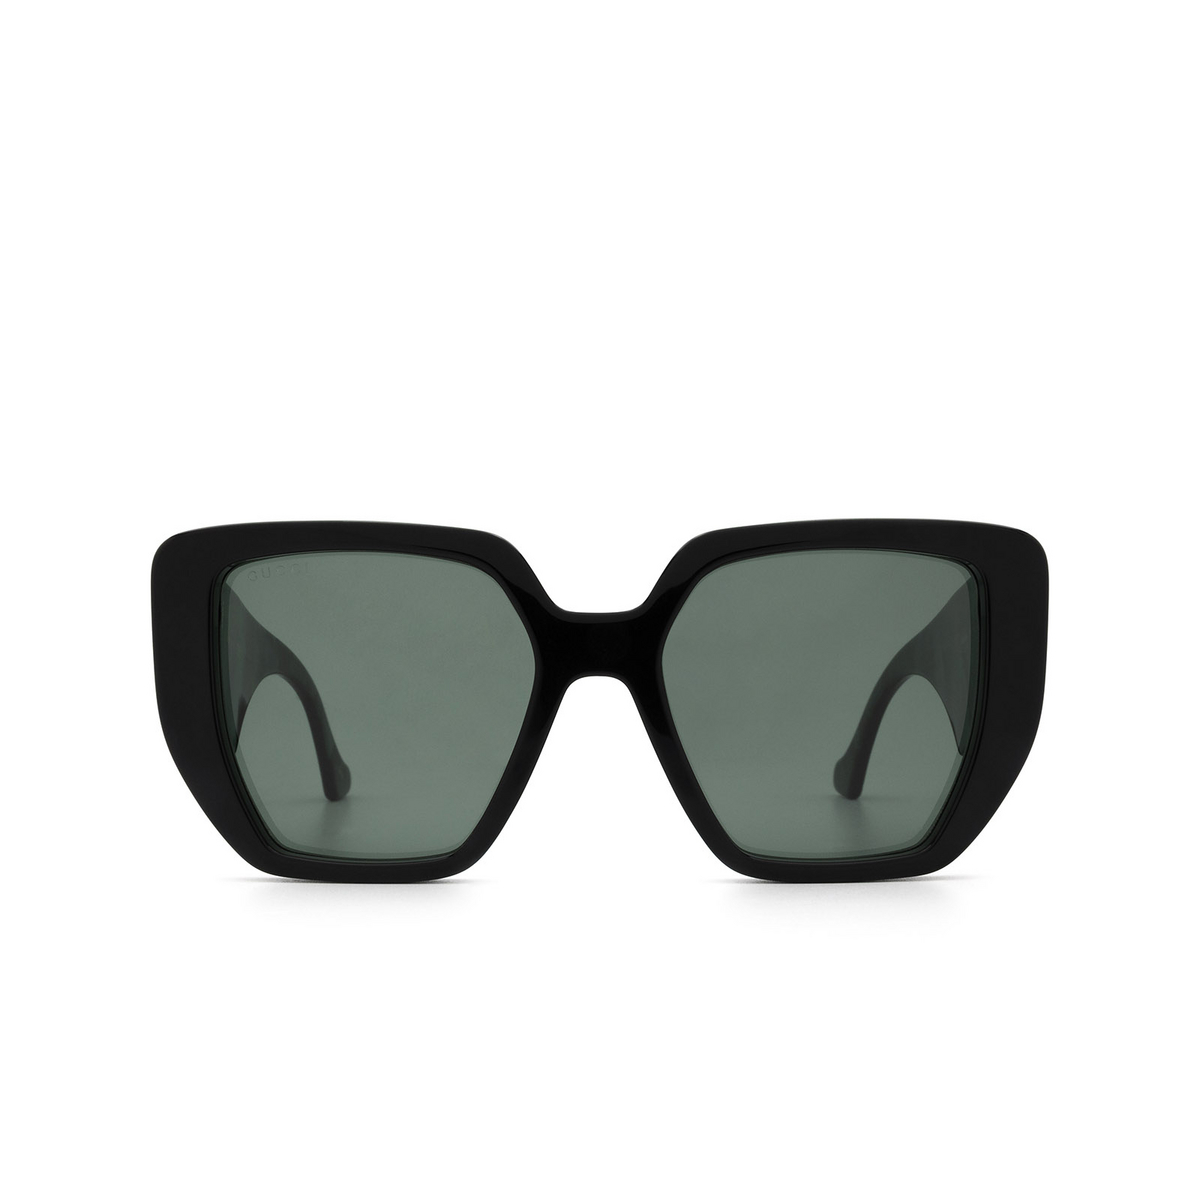 Gucci® Irregular Sunglasses: GG0956S color Black 001 - front view.